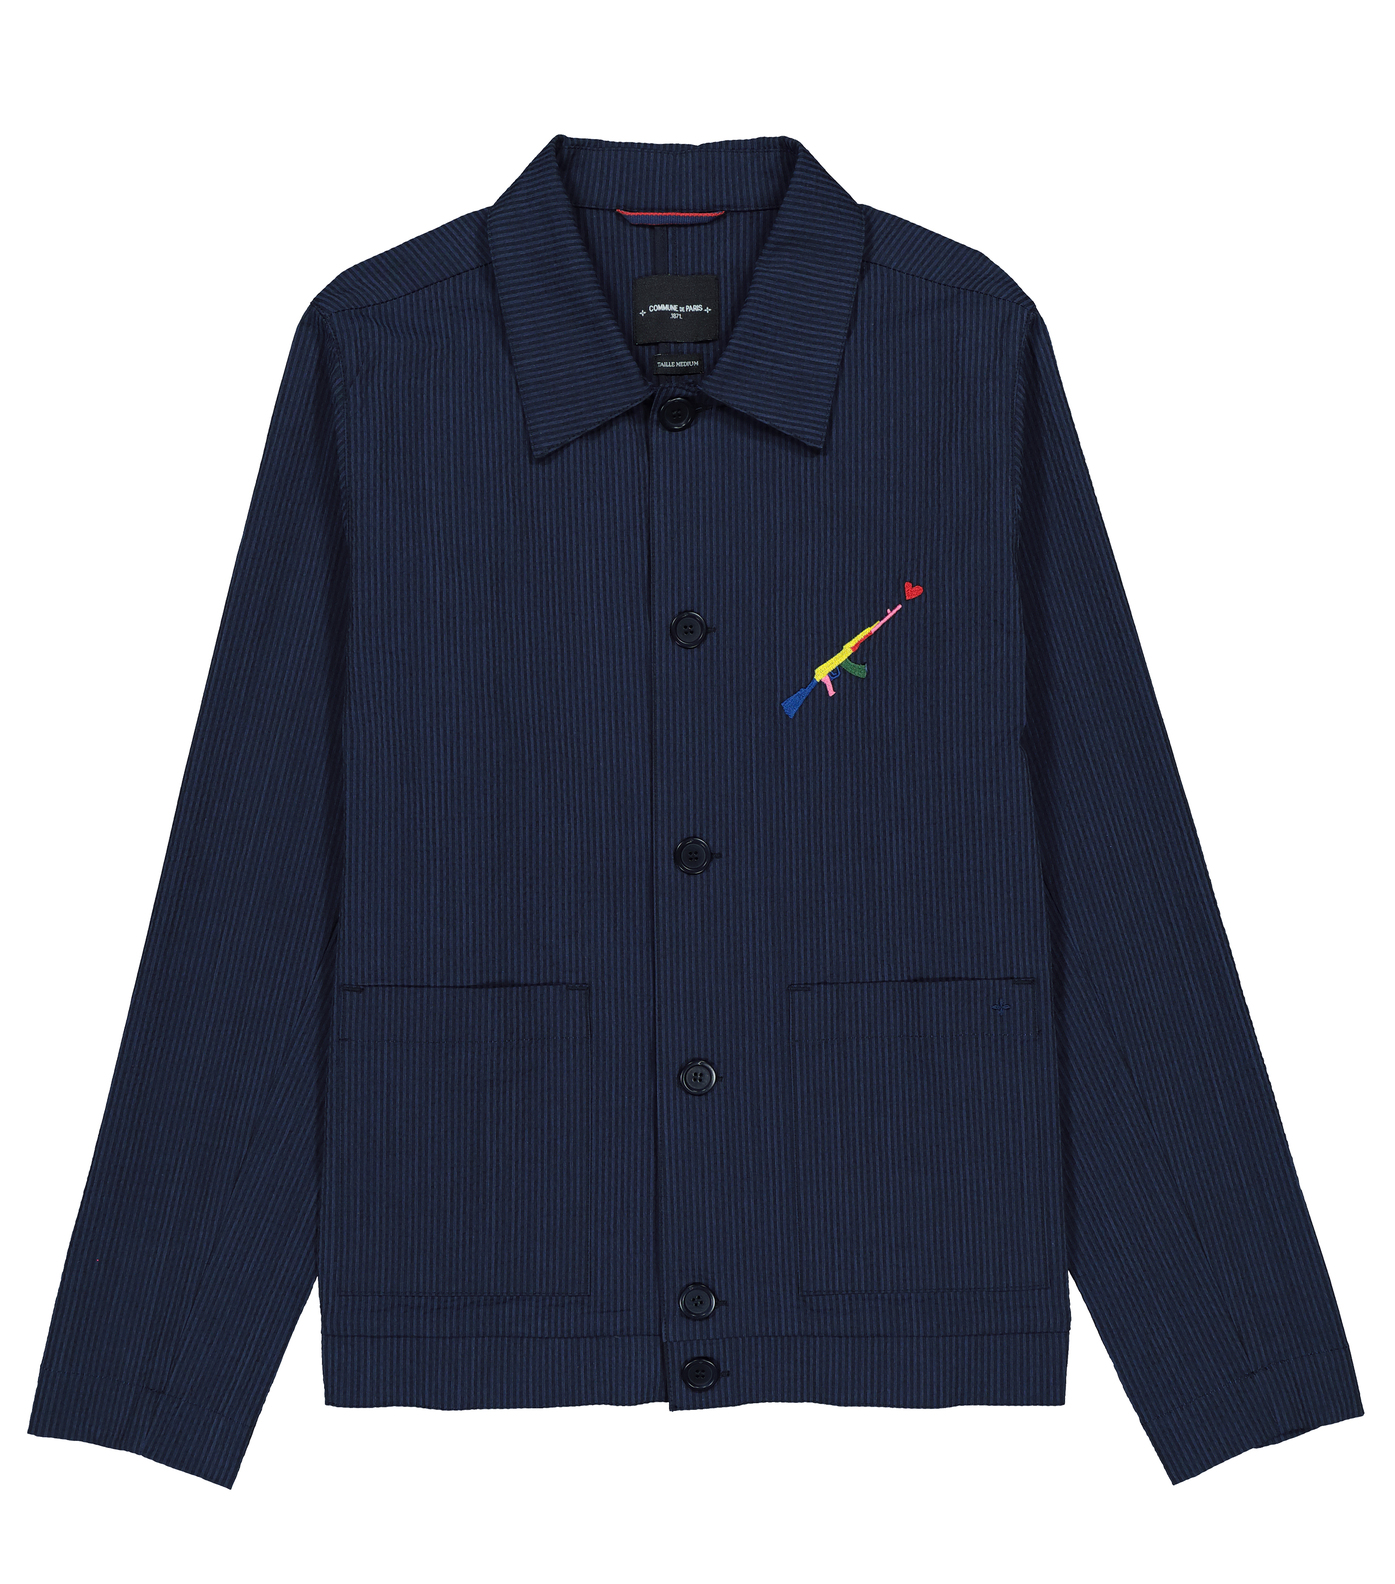 JACKET  CORTO  - Navy stripes